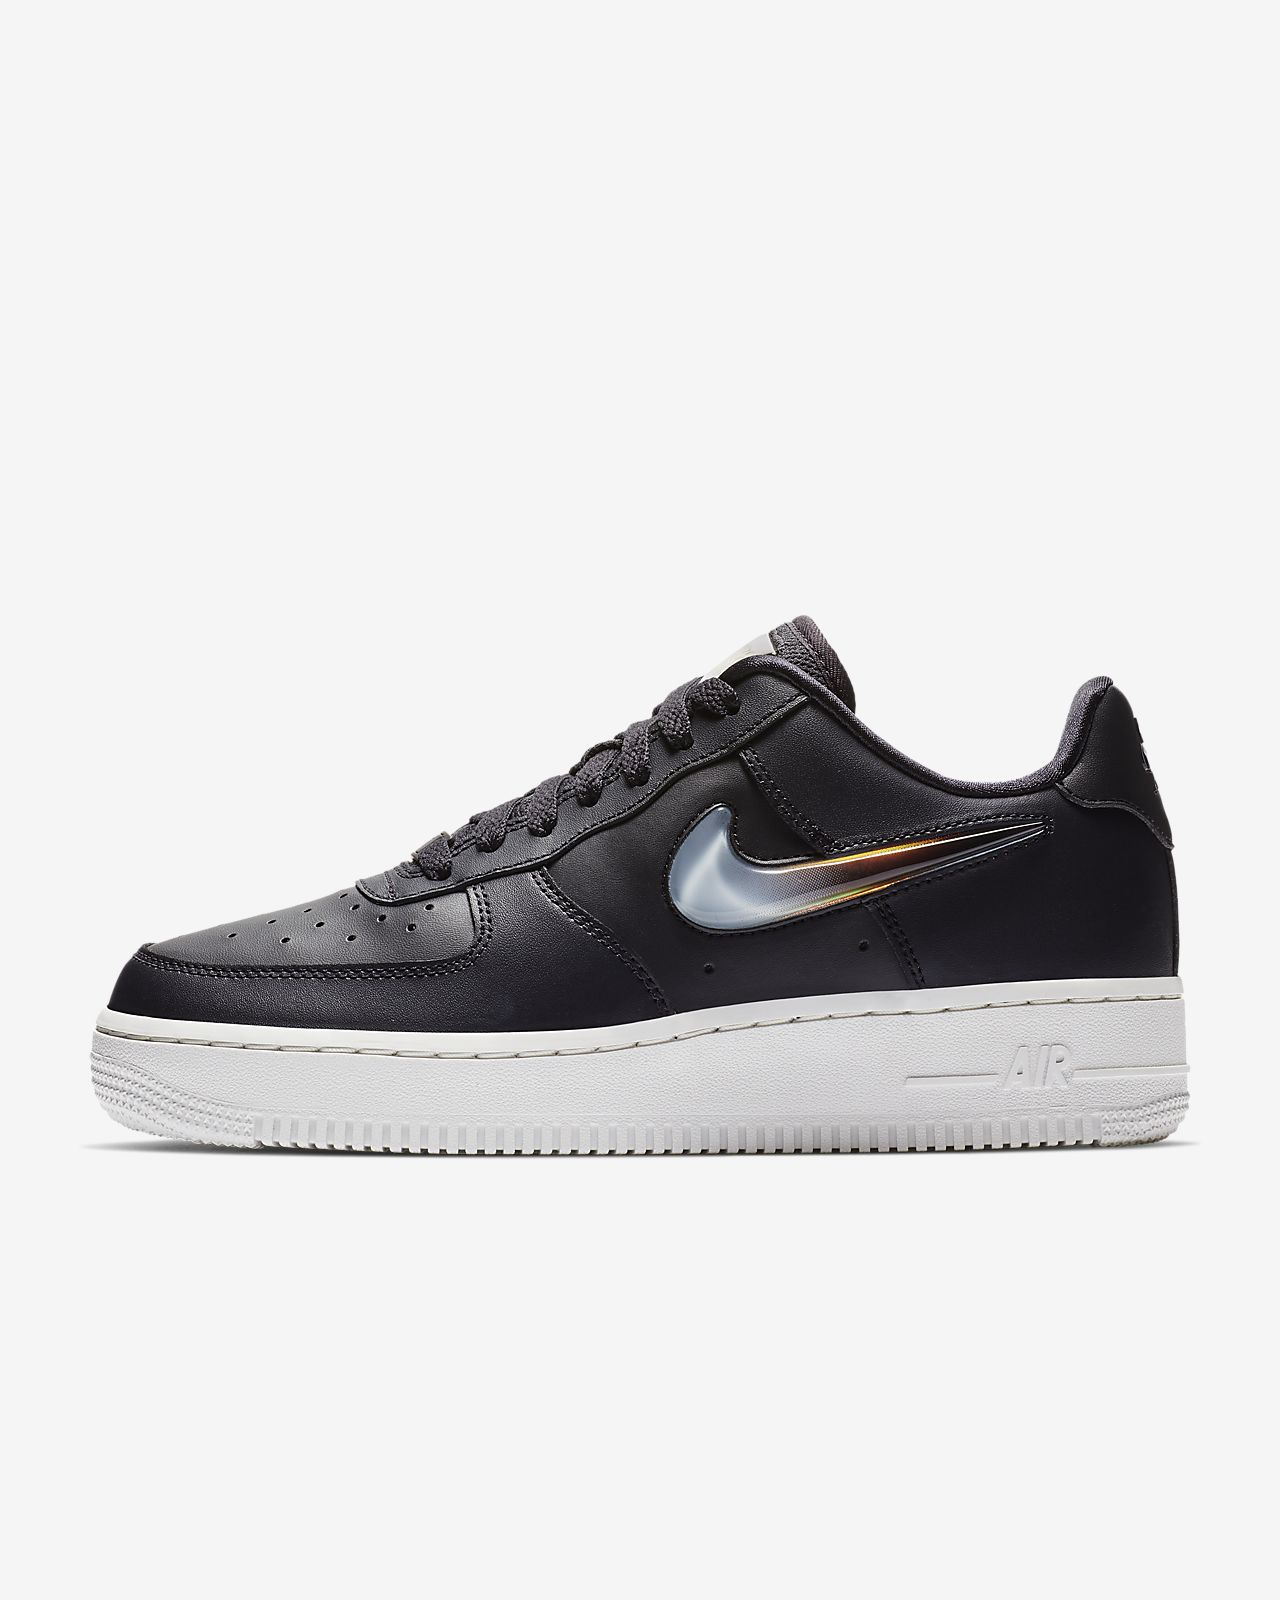 reputable site a7212 974b3 Buty damskie Nike Air Force 1 07 SE Premium